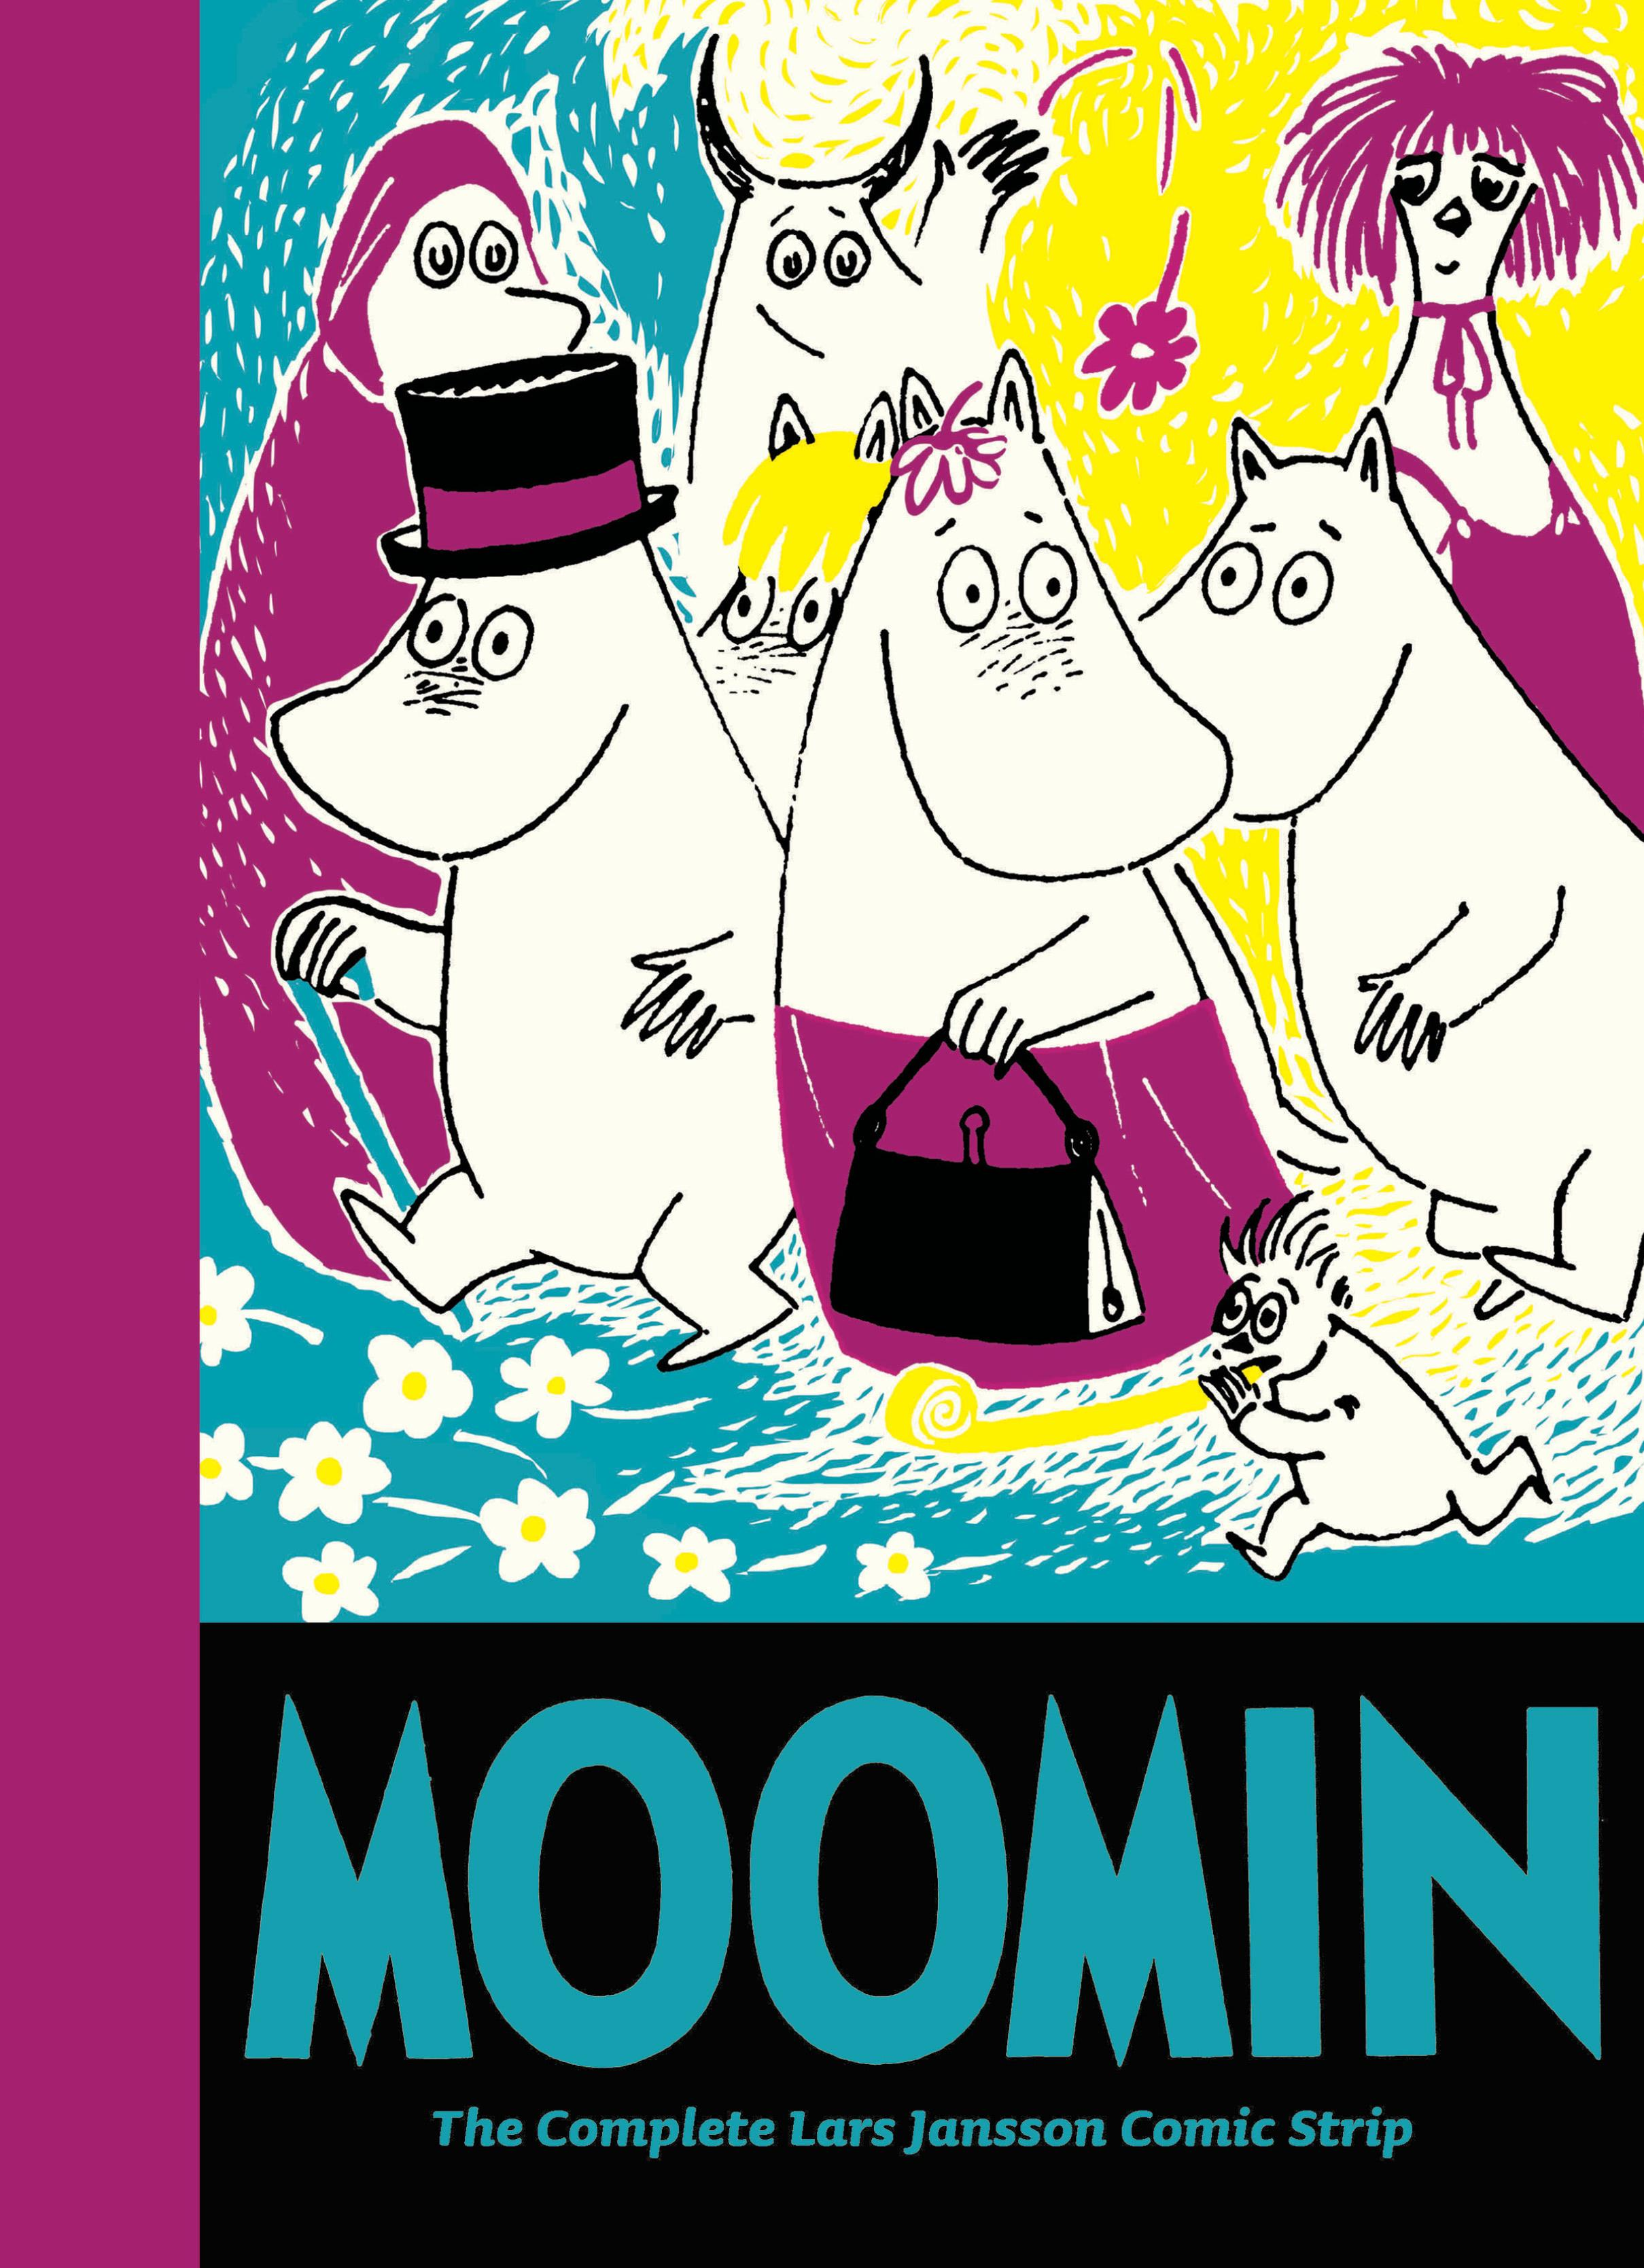 Moomin v10 - The Complete Lars Jansson Comic Strip (2015) (Digital) (phillywilly-Empire